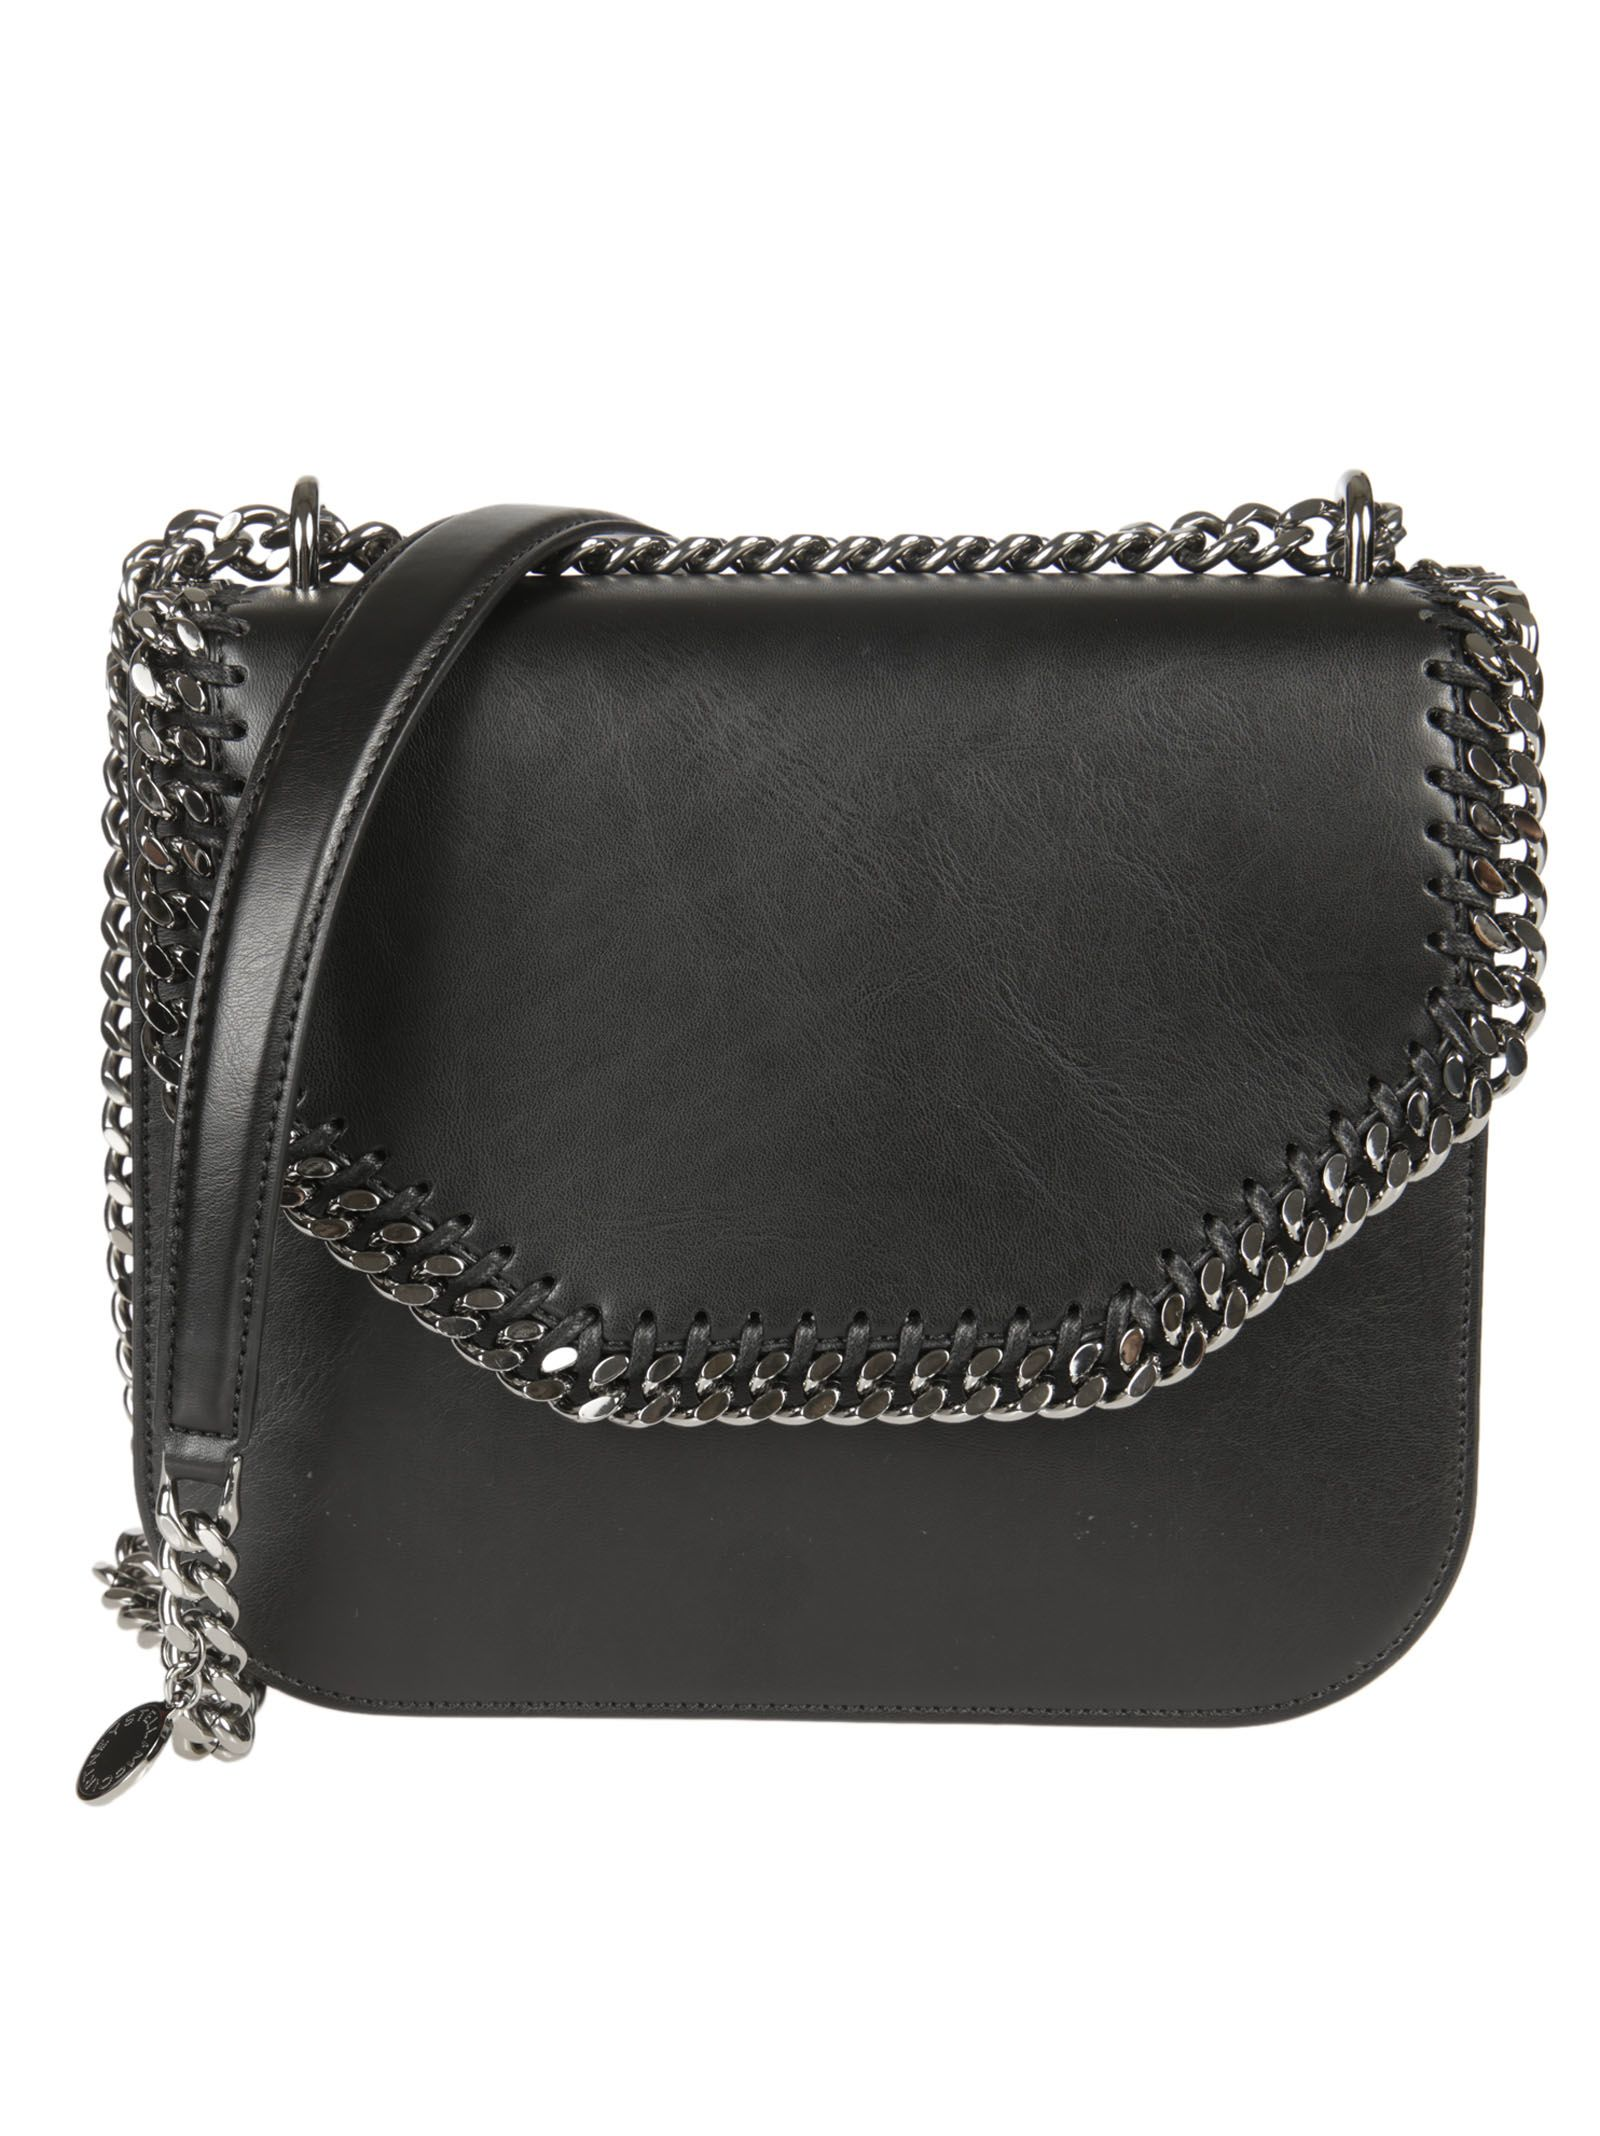 69dc2cb685c Stella McCartney Stella McCartney Falabella Box Shoulder Bag - Black ...